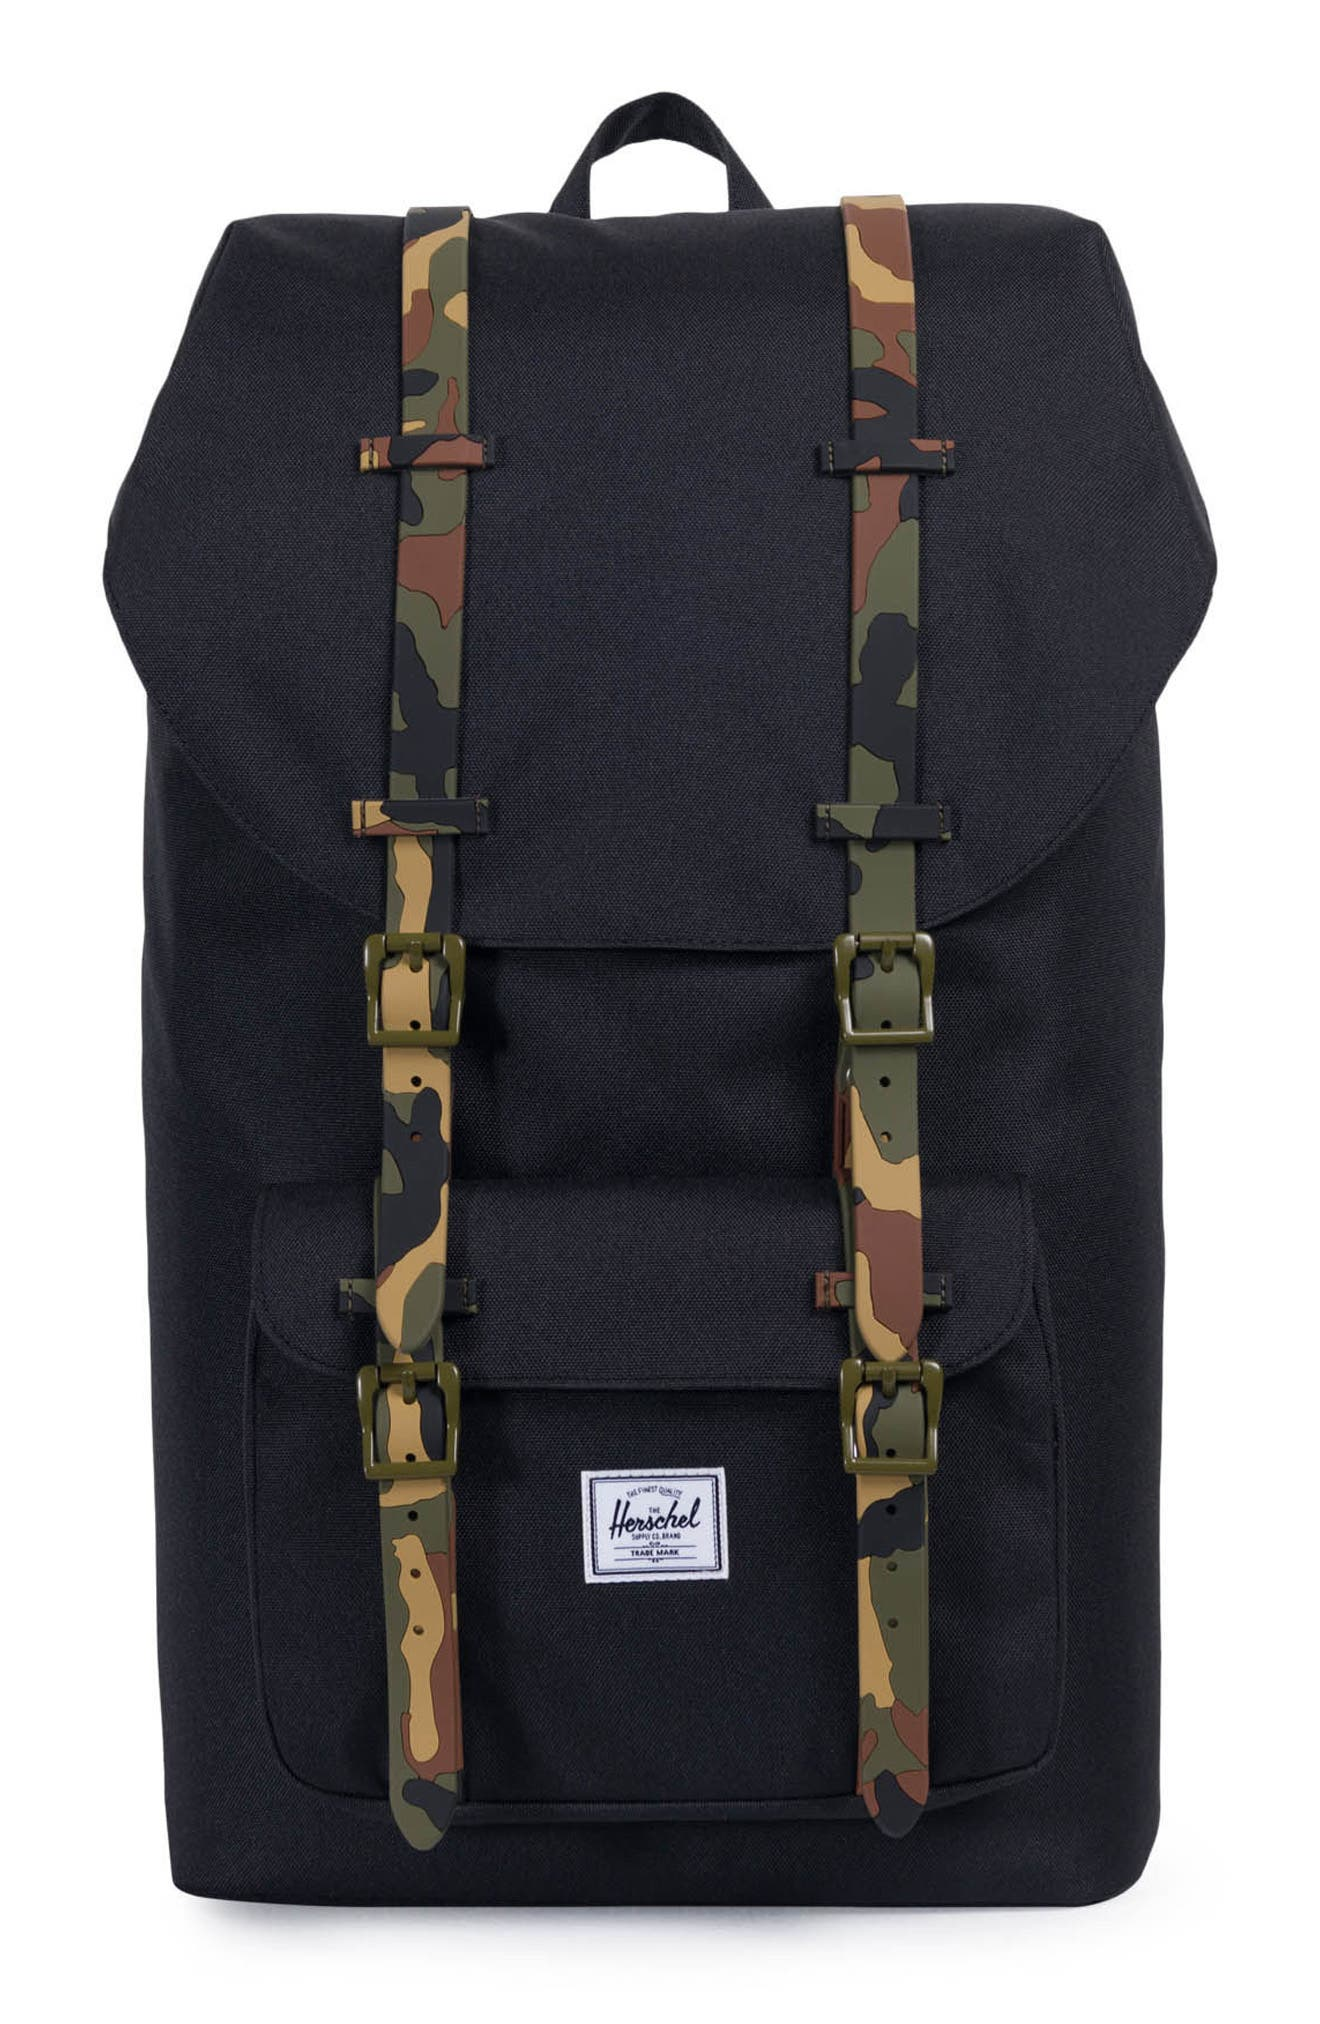 Little America Backpack,                         Main,                         color, Black/ Woodland Camo Rubber